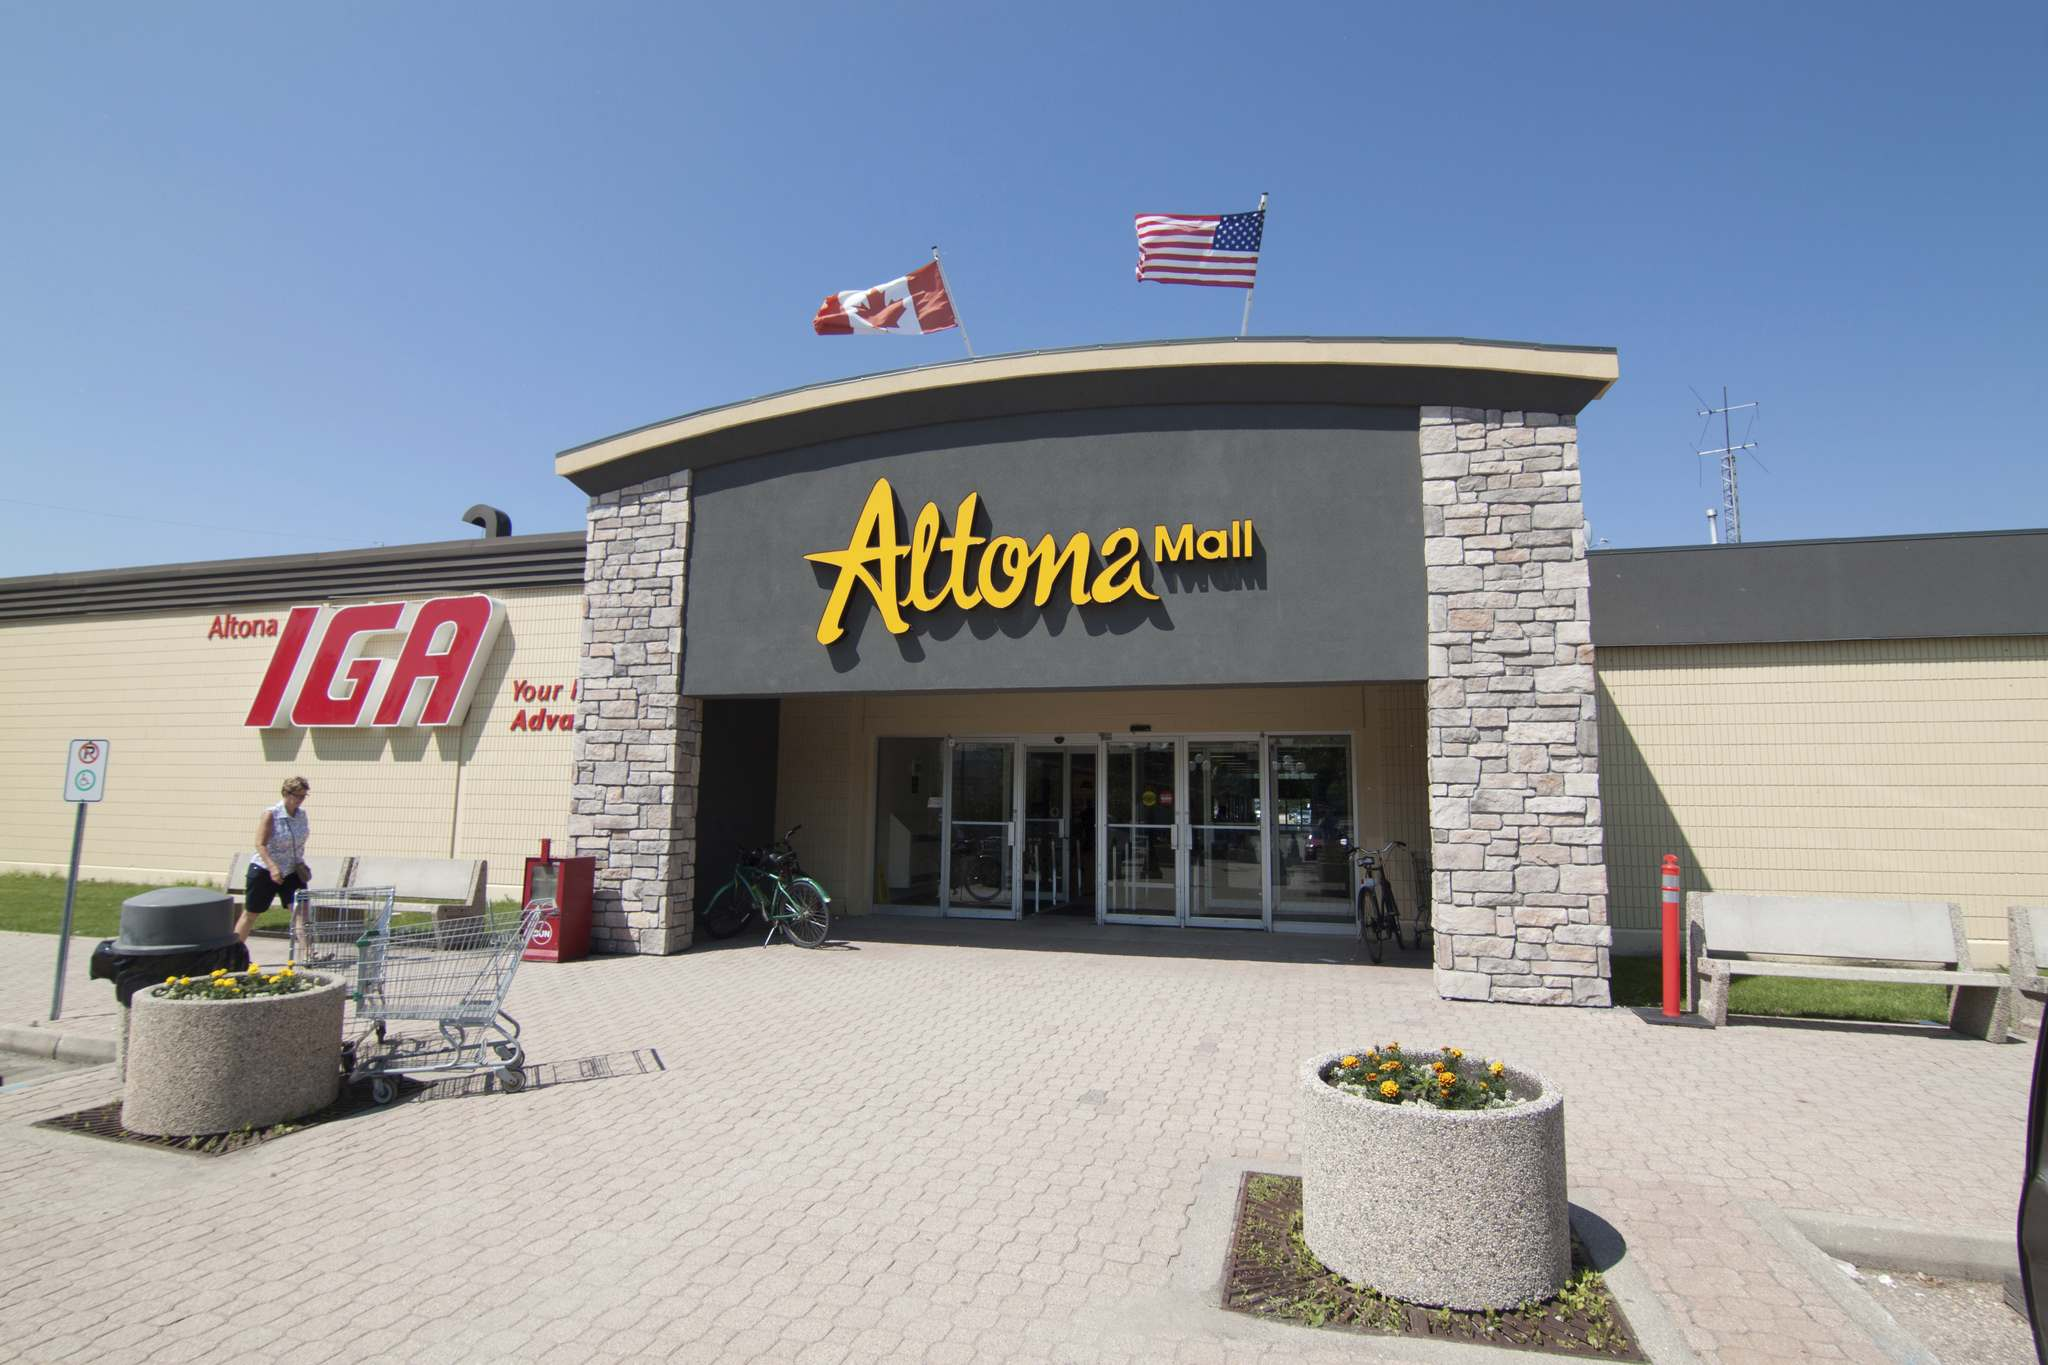 <p>Six years ago Remco Realty Ltd. purchased the half-empty Altona Mall which re-opens this weekend after extensive renovations.</p>